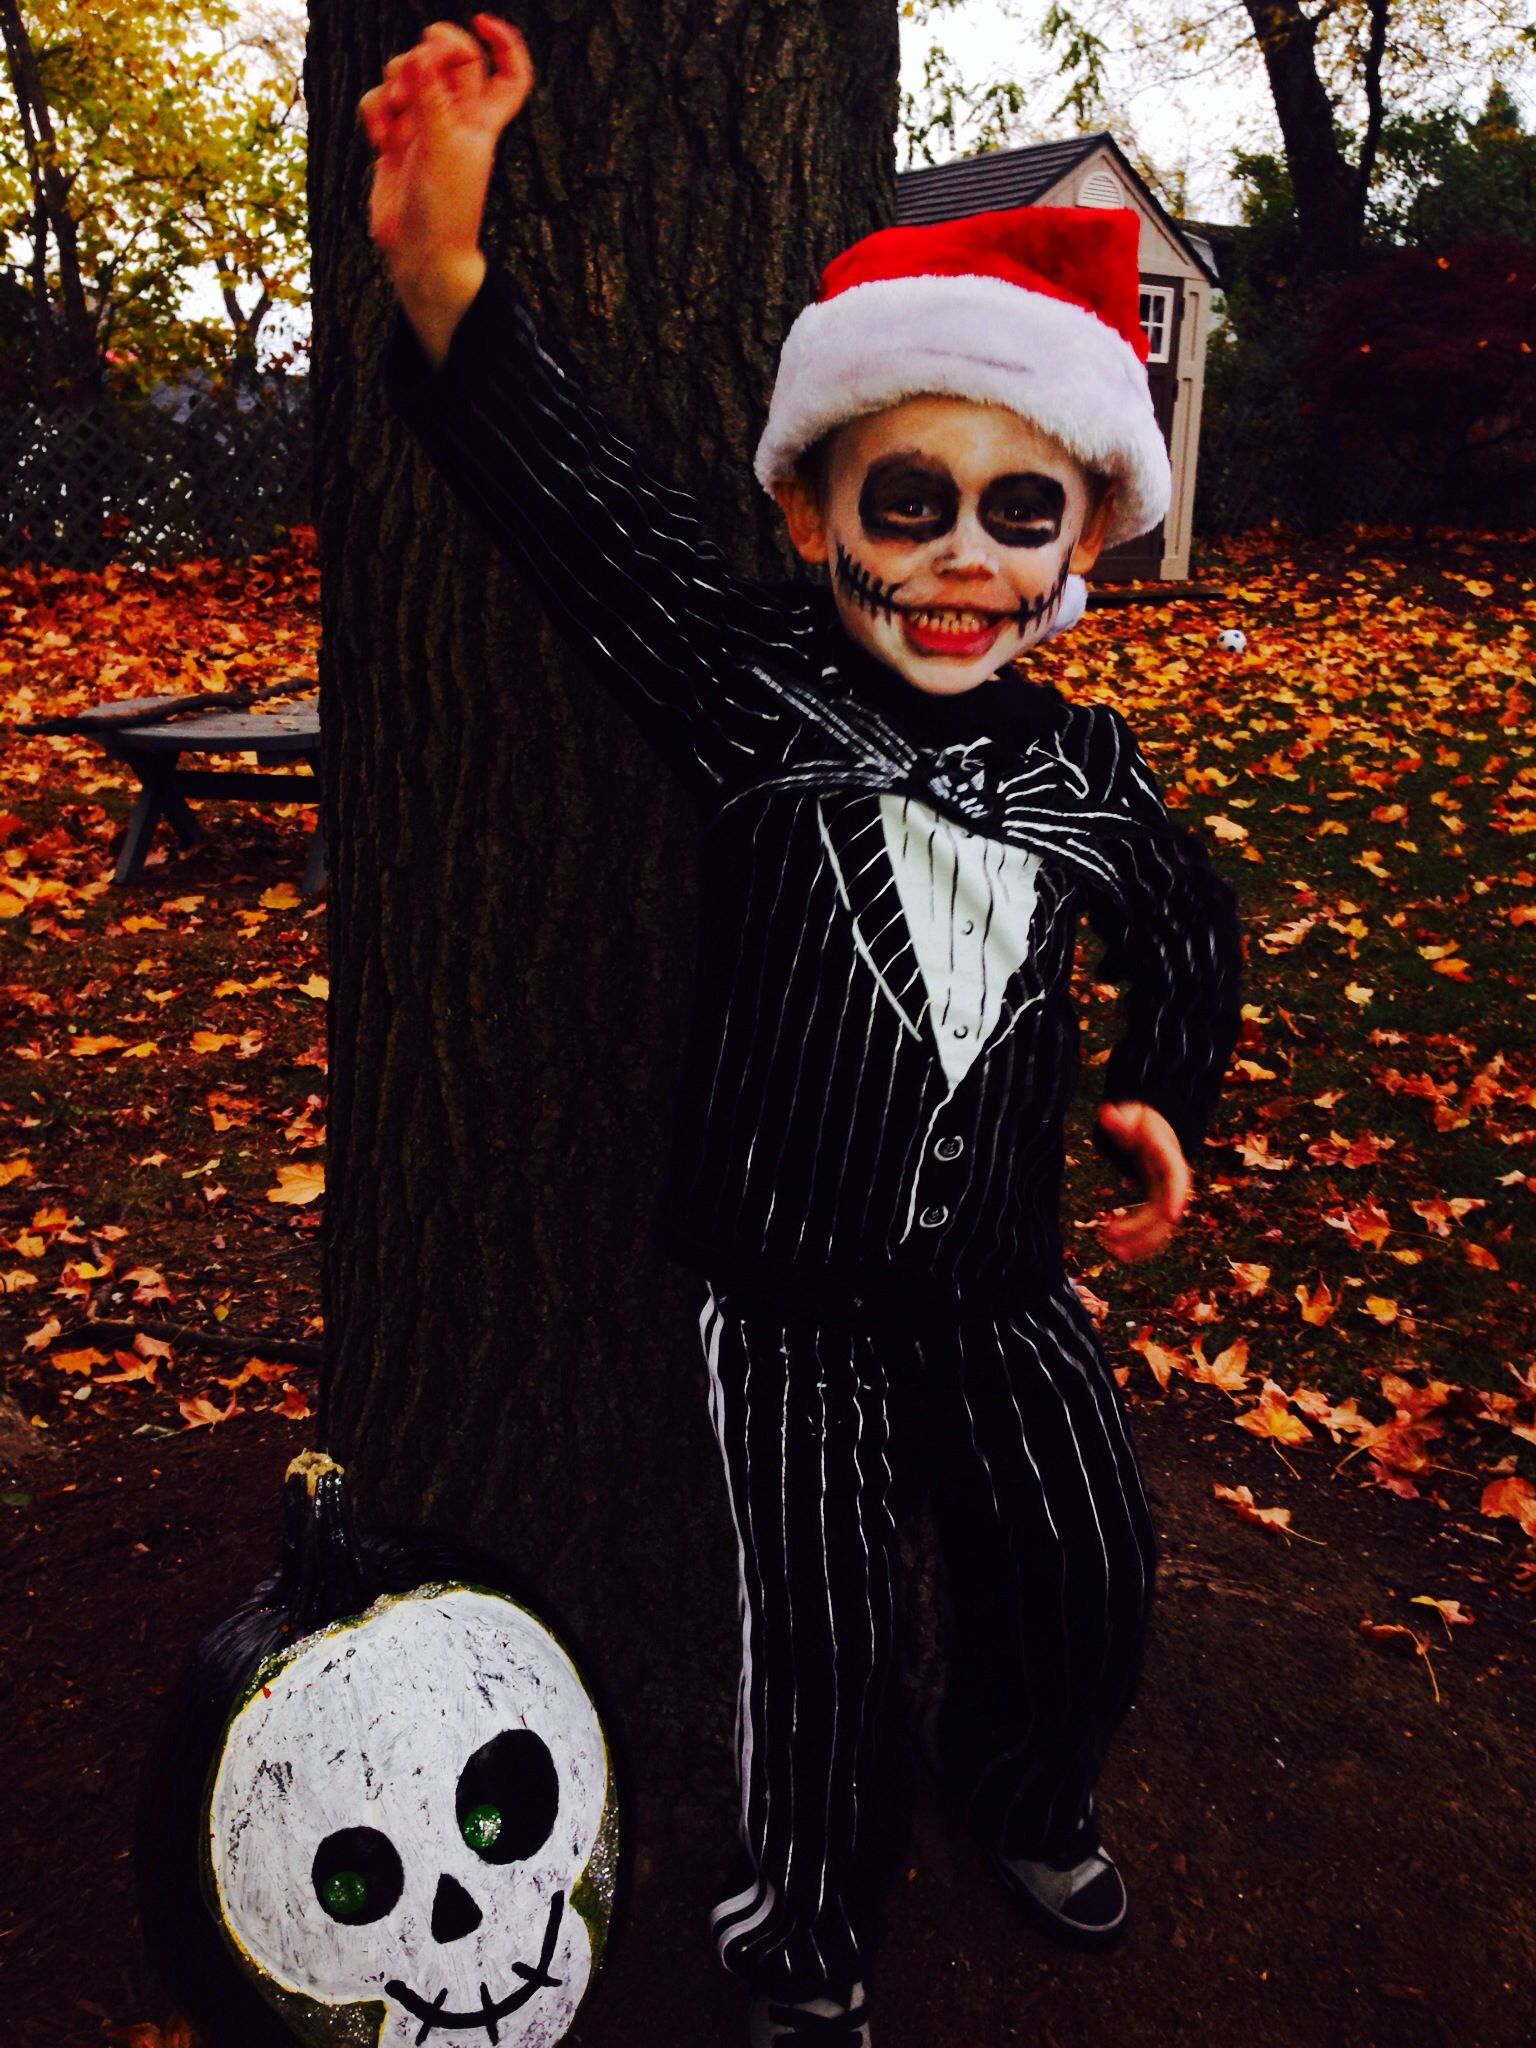 toddler jack skellington costume buy a tuxedo shirt and puffy paint white stripes easy - Where To Buy Toddler Halloween Costumes